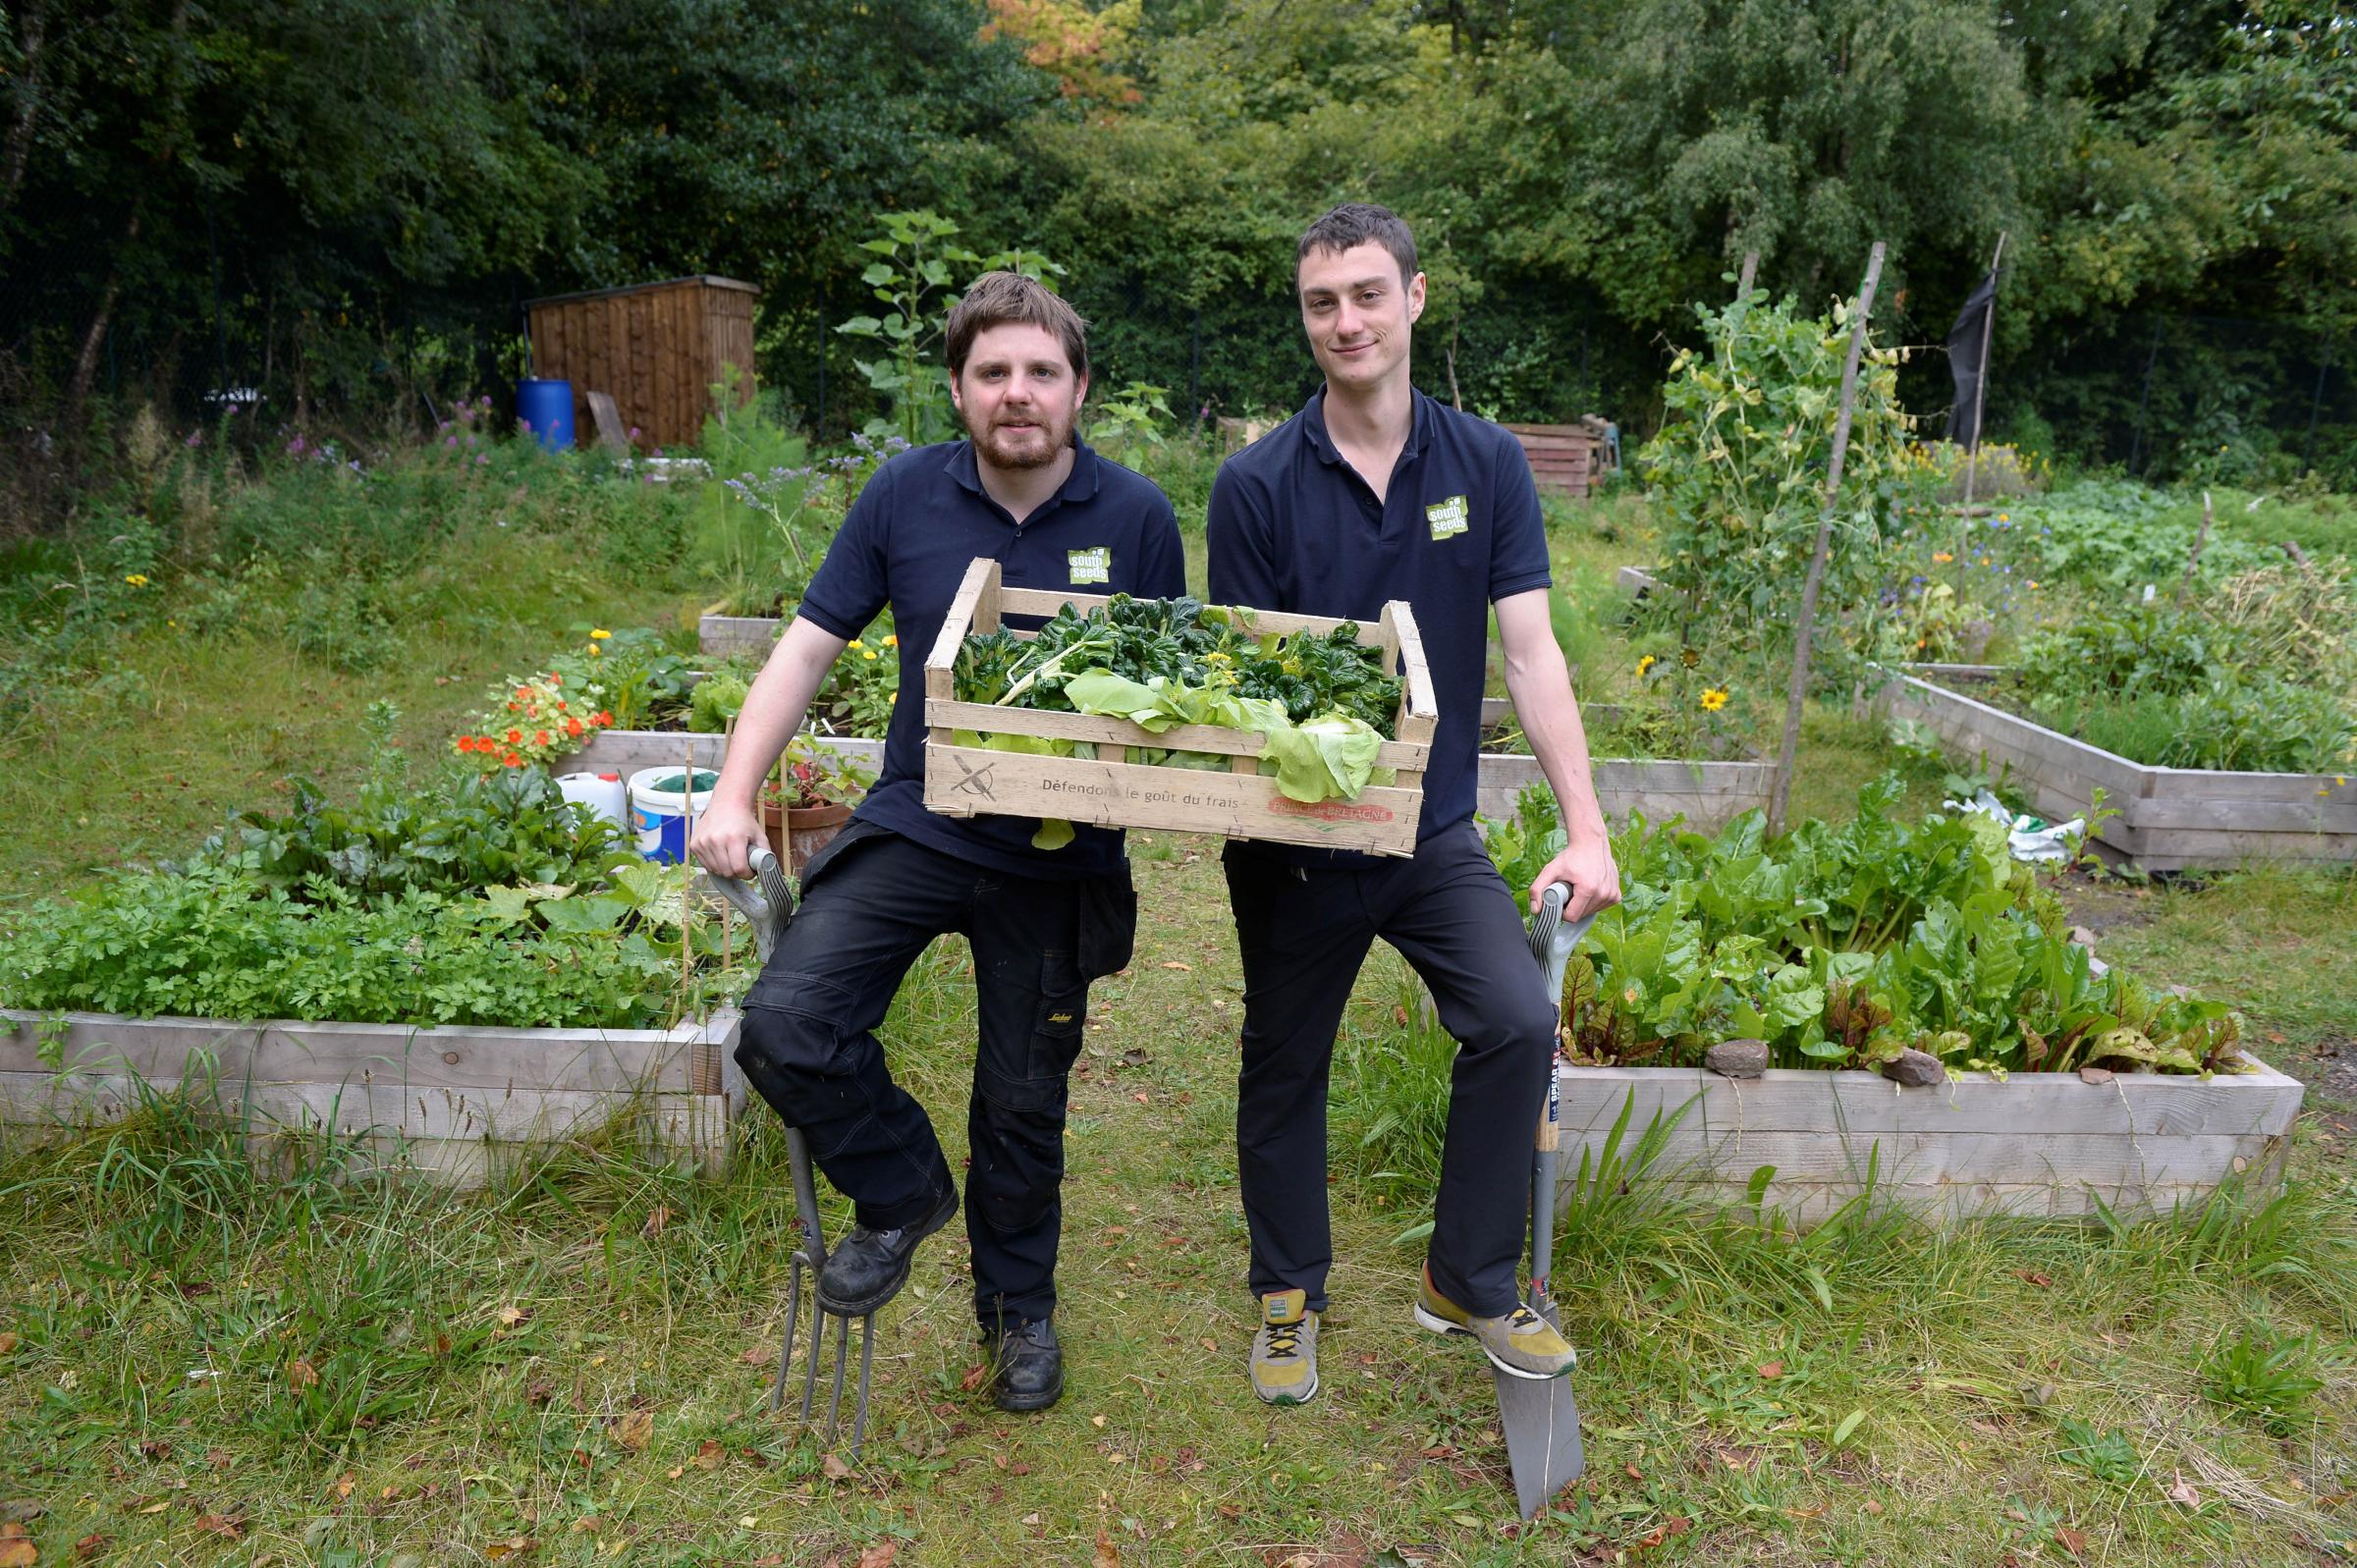 South Seeds ask for ideas to transform outdoor spaces